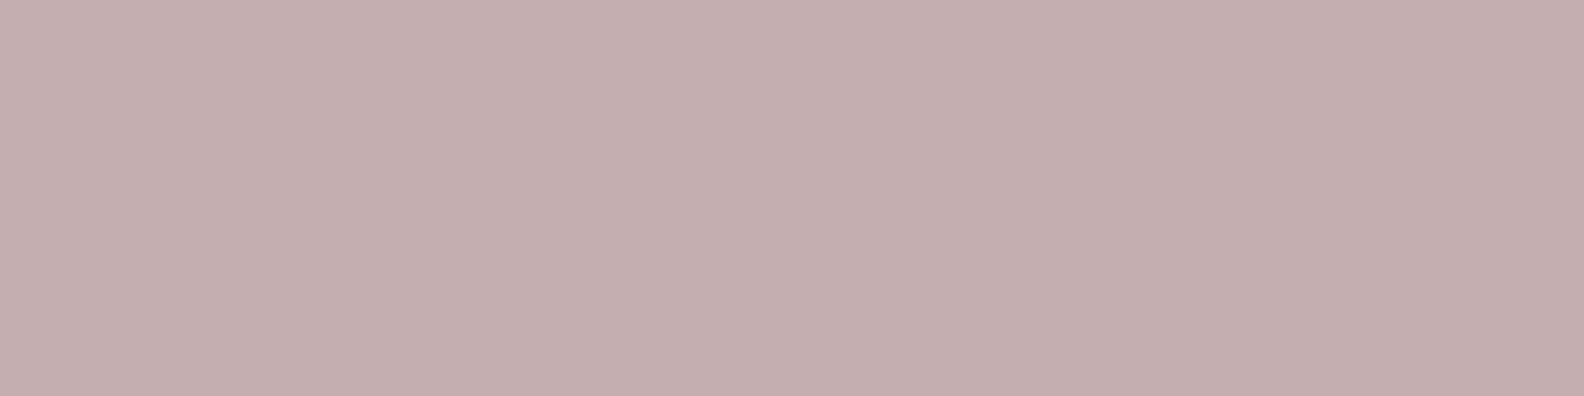 1584x396 Silver Pink Solid Color Background